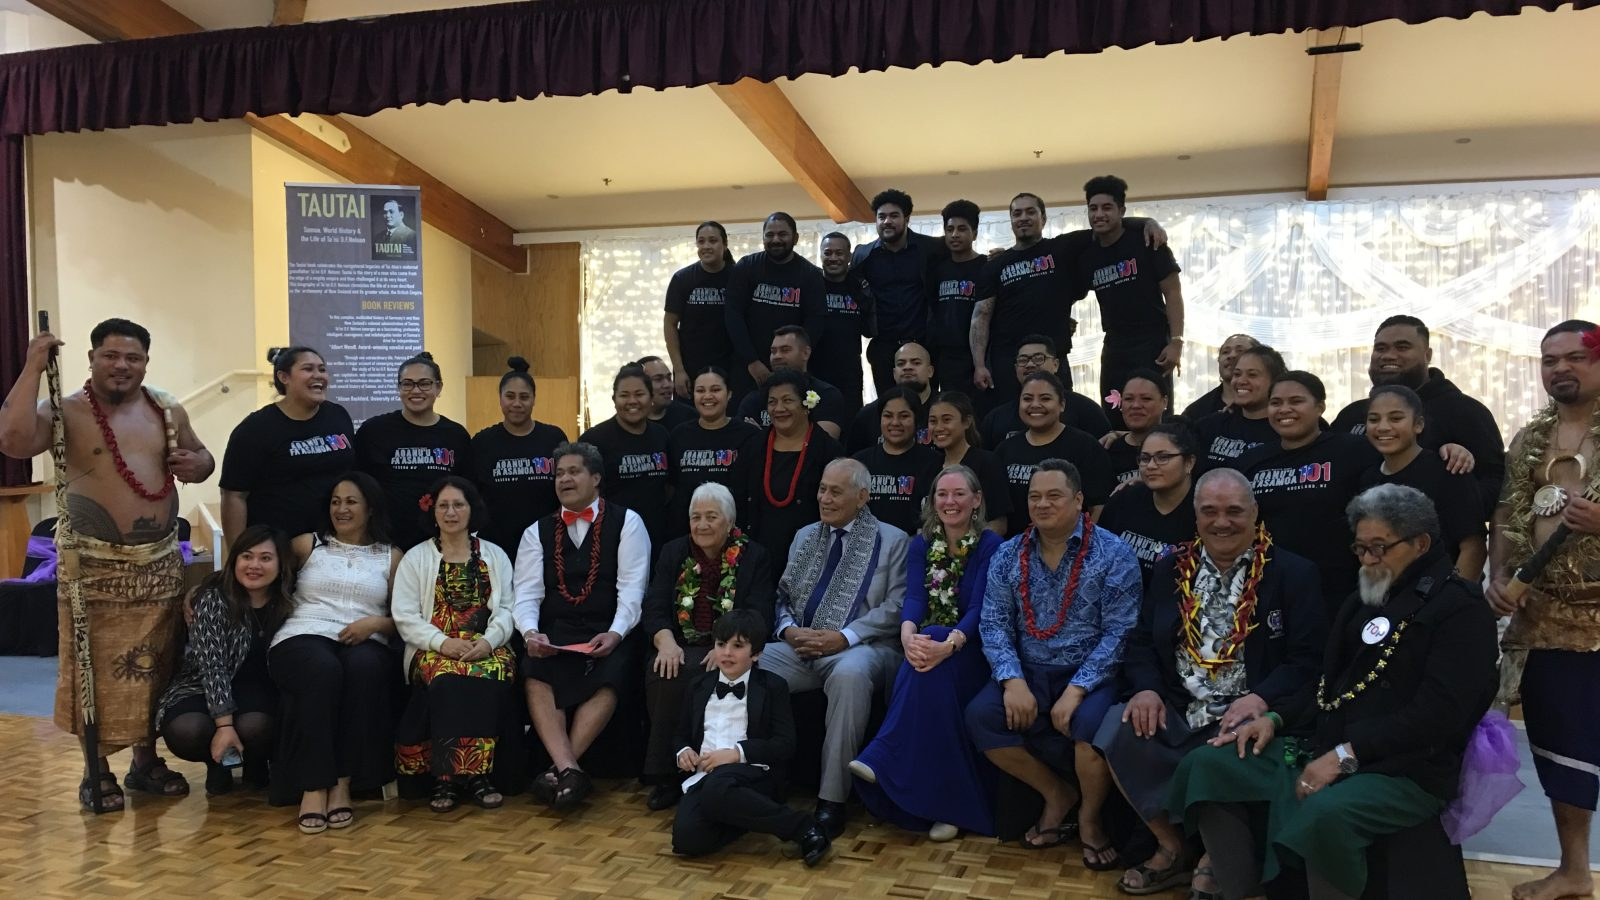 New Zealand launch of book Tautai